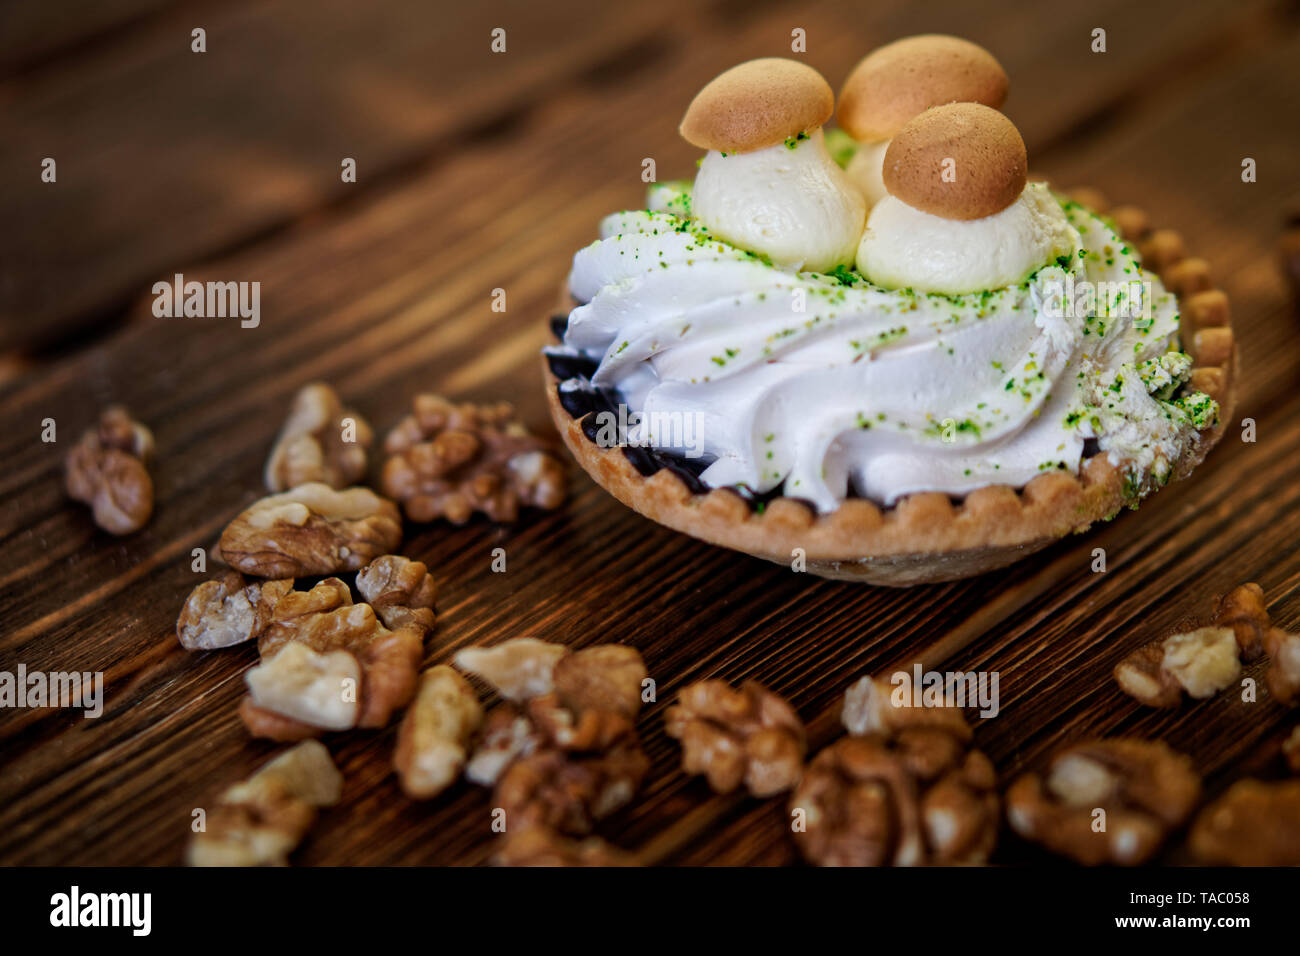 Cake, made in the form of a basket with cream and imitation of mushrooms, lies on a wooden table next to peeled walnuts. Shallow depth of field. Dayli - Stock Image